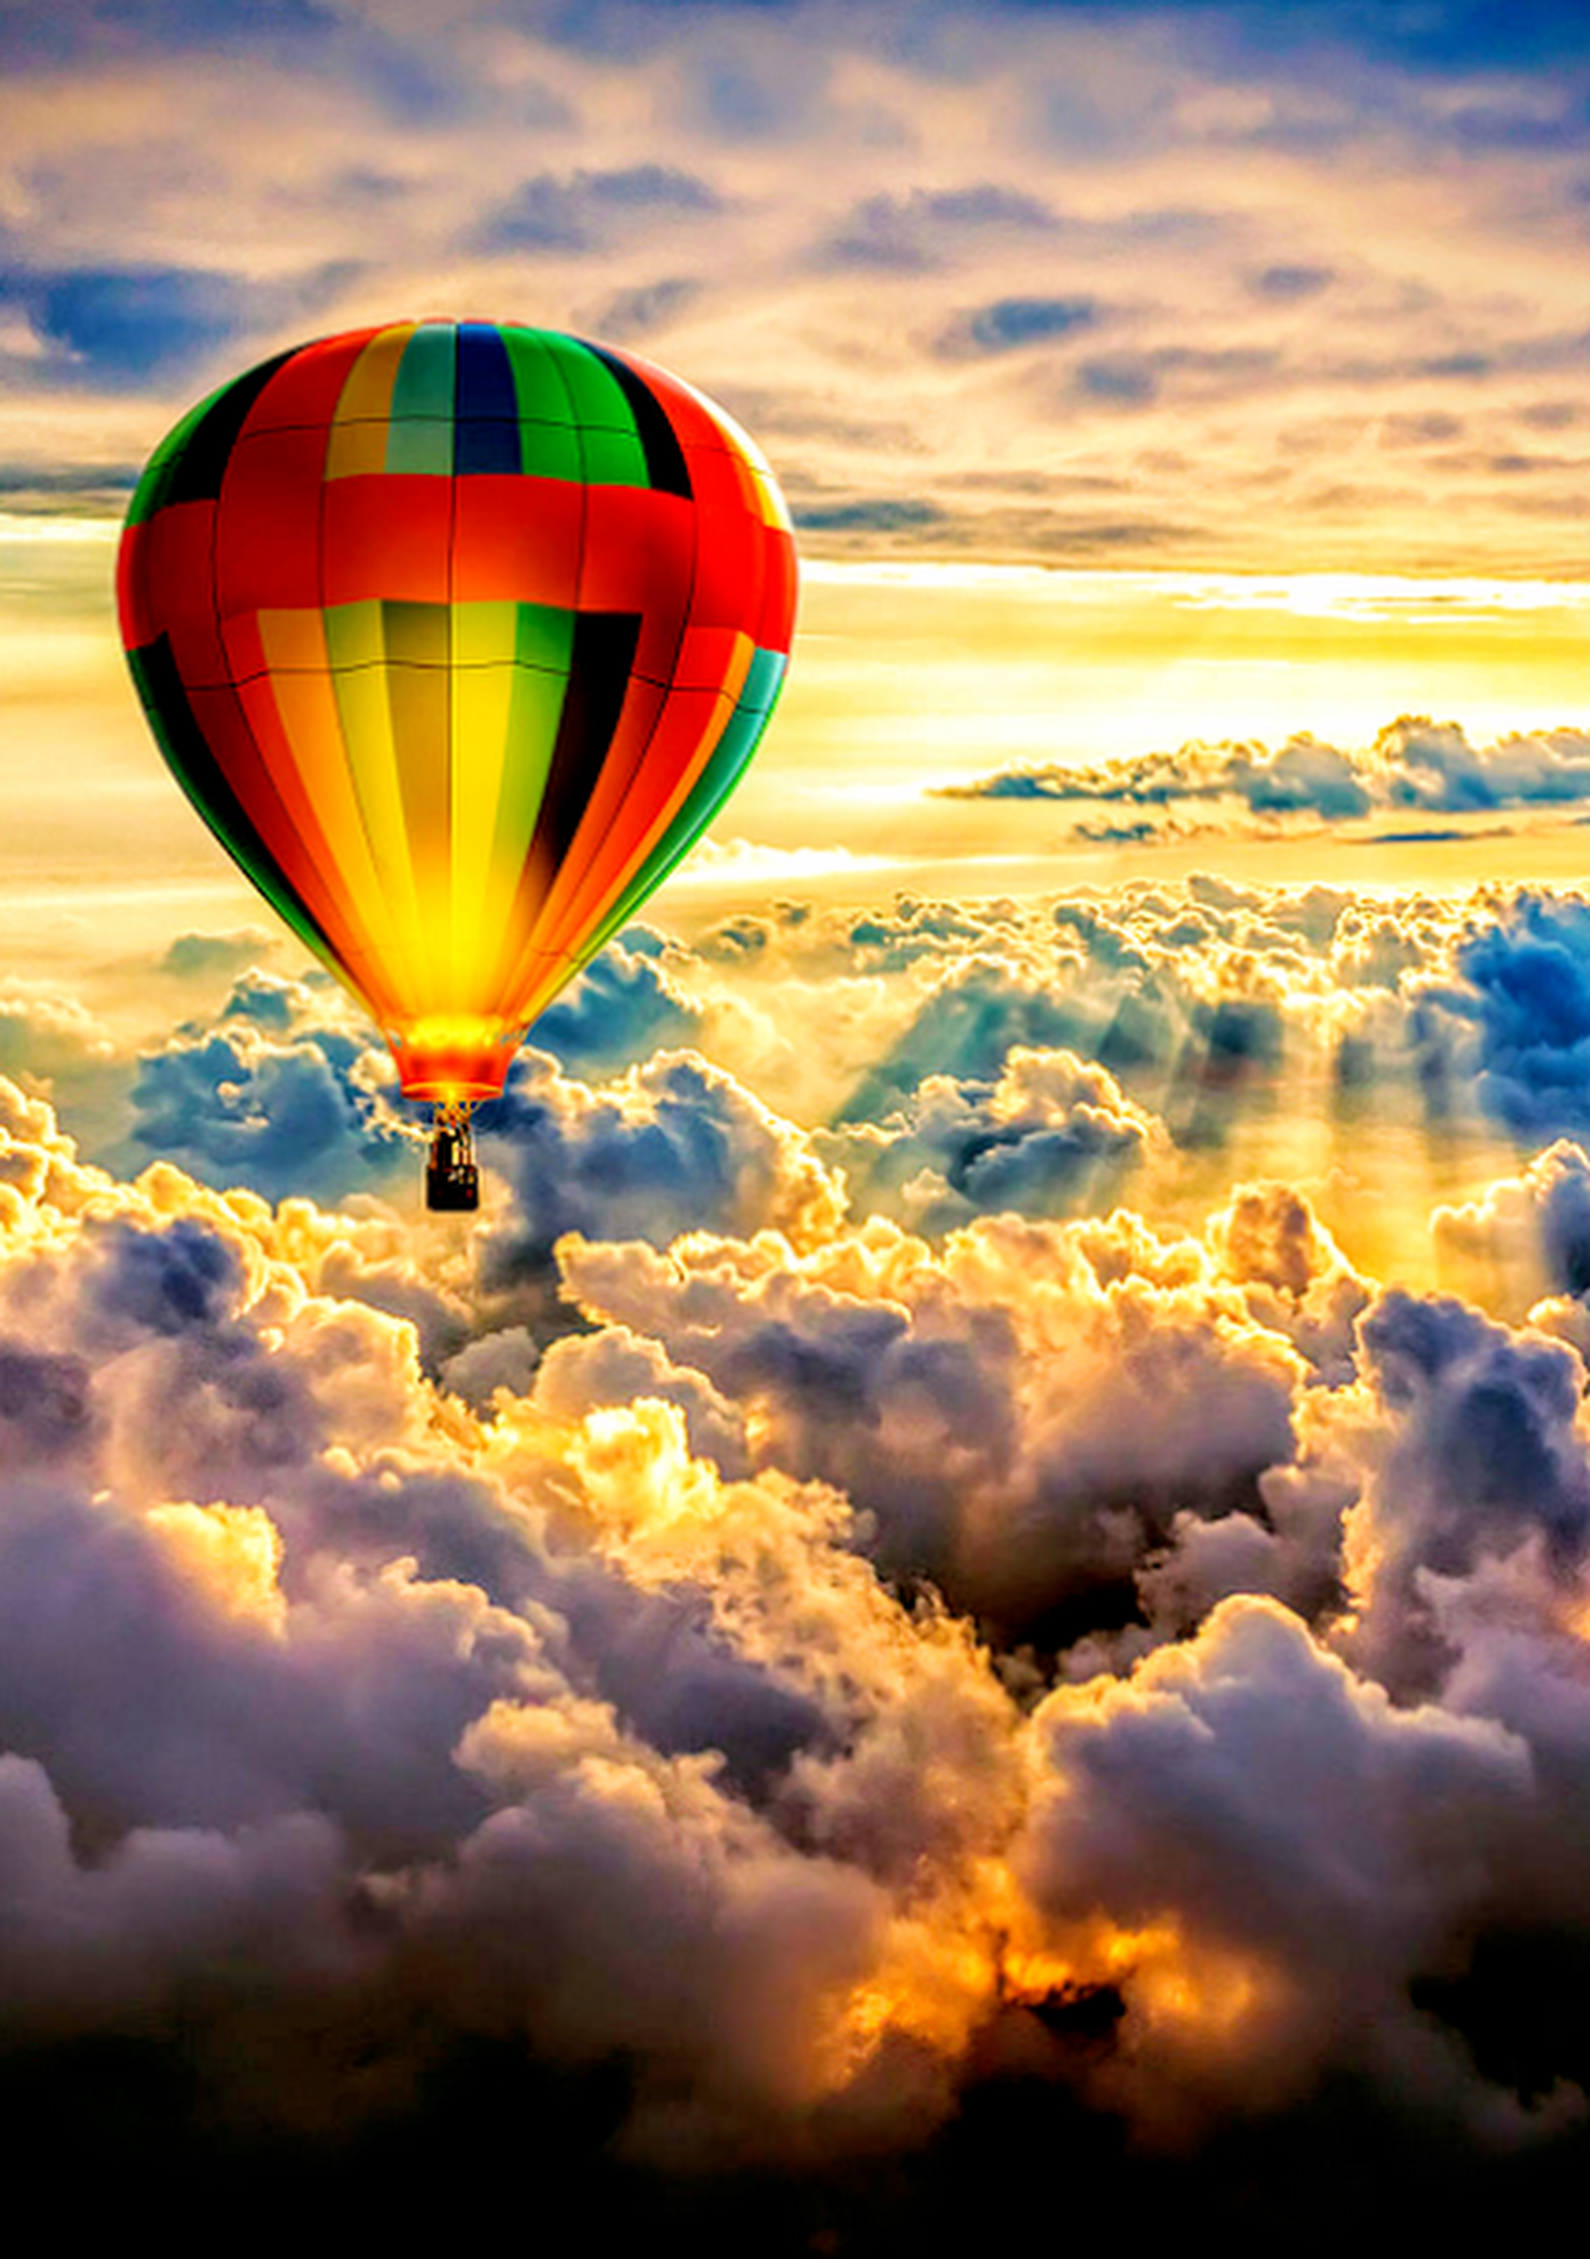 Pin by Raymond Pease on Landscape Air balloon rides, Hot